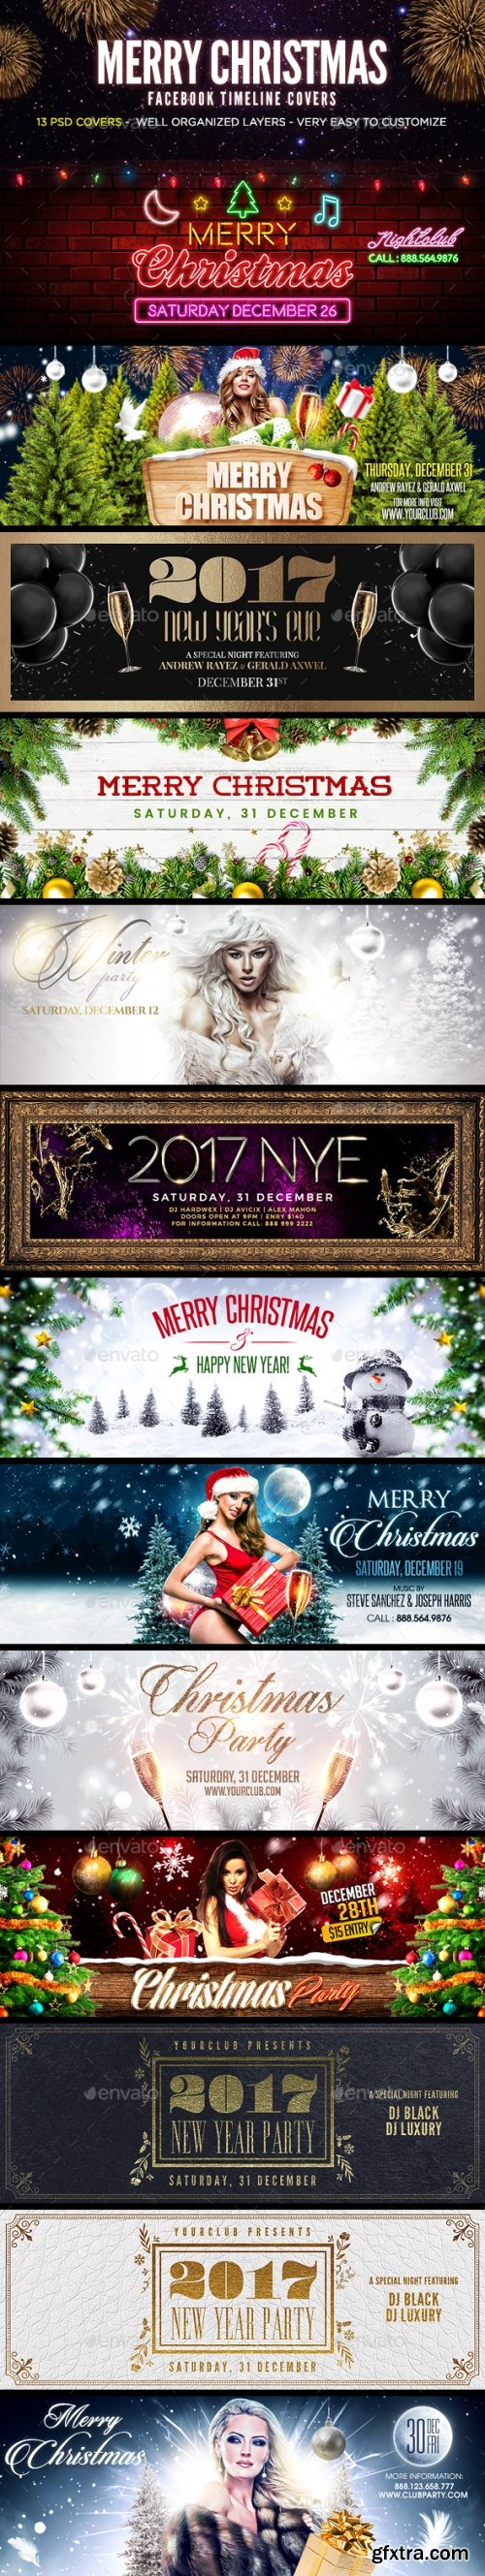 Graphicriver - Merry Christmas Facebook Cover 19166066